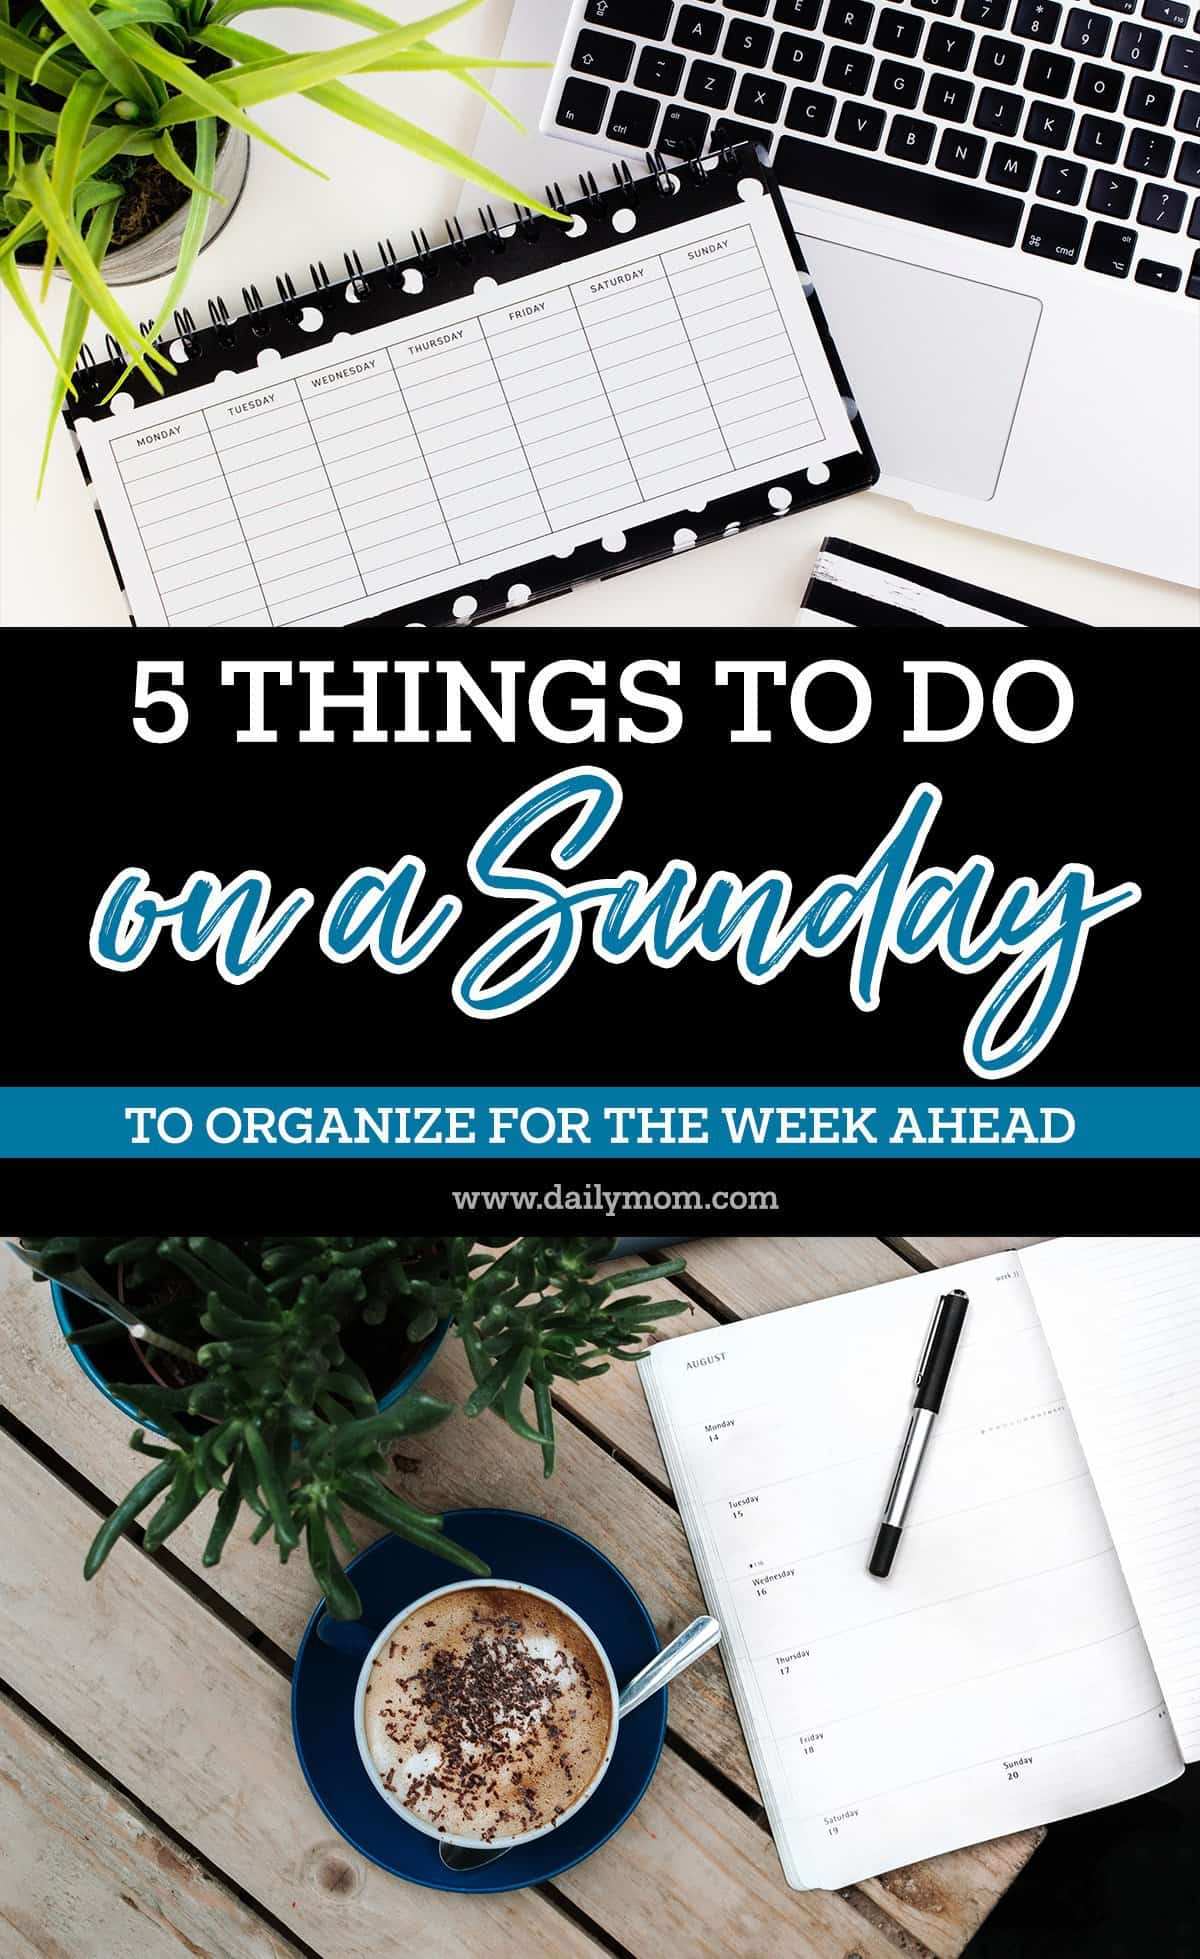 5 Things to do on a Sunday to Organize for the Week Ahead 6 Daily Mom Parents Portal